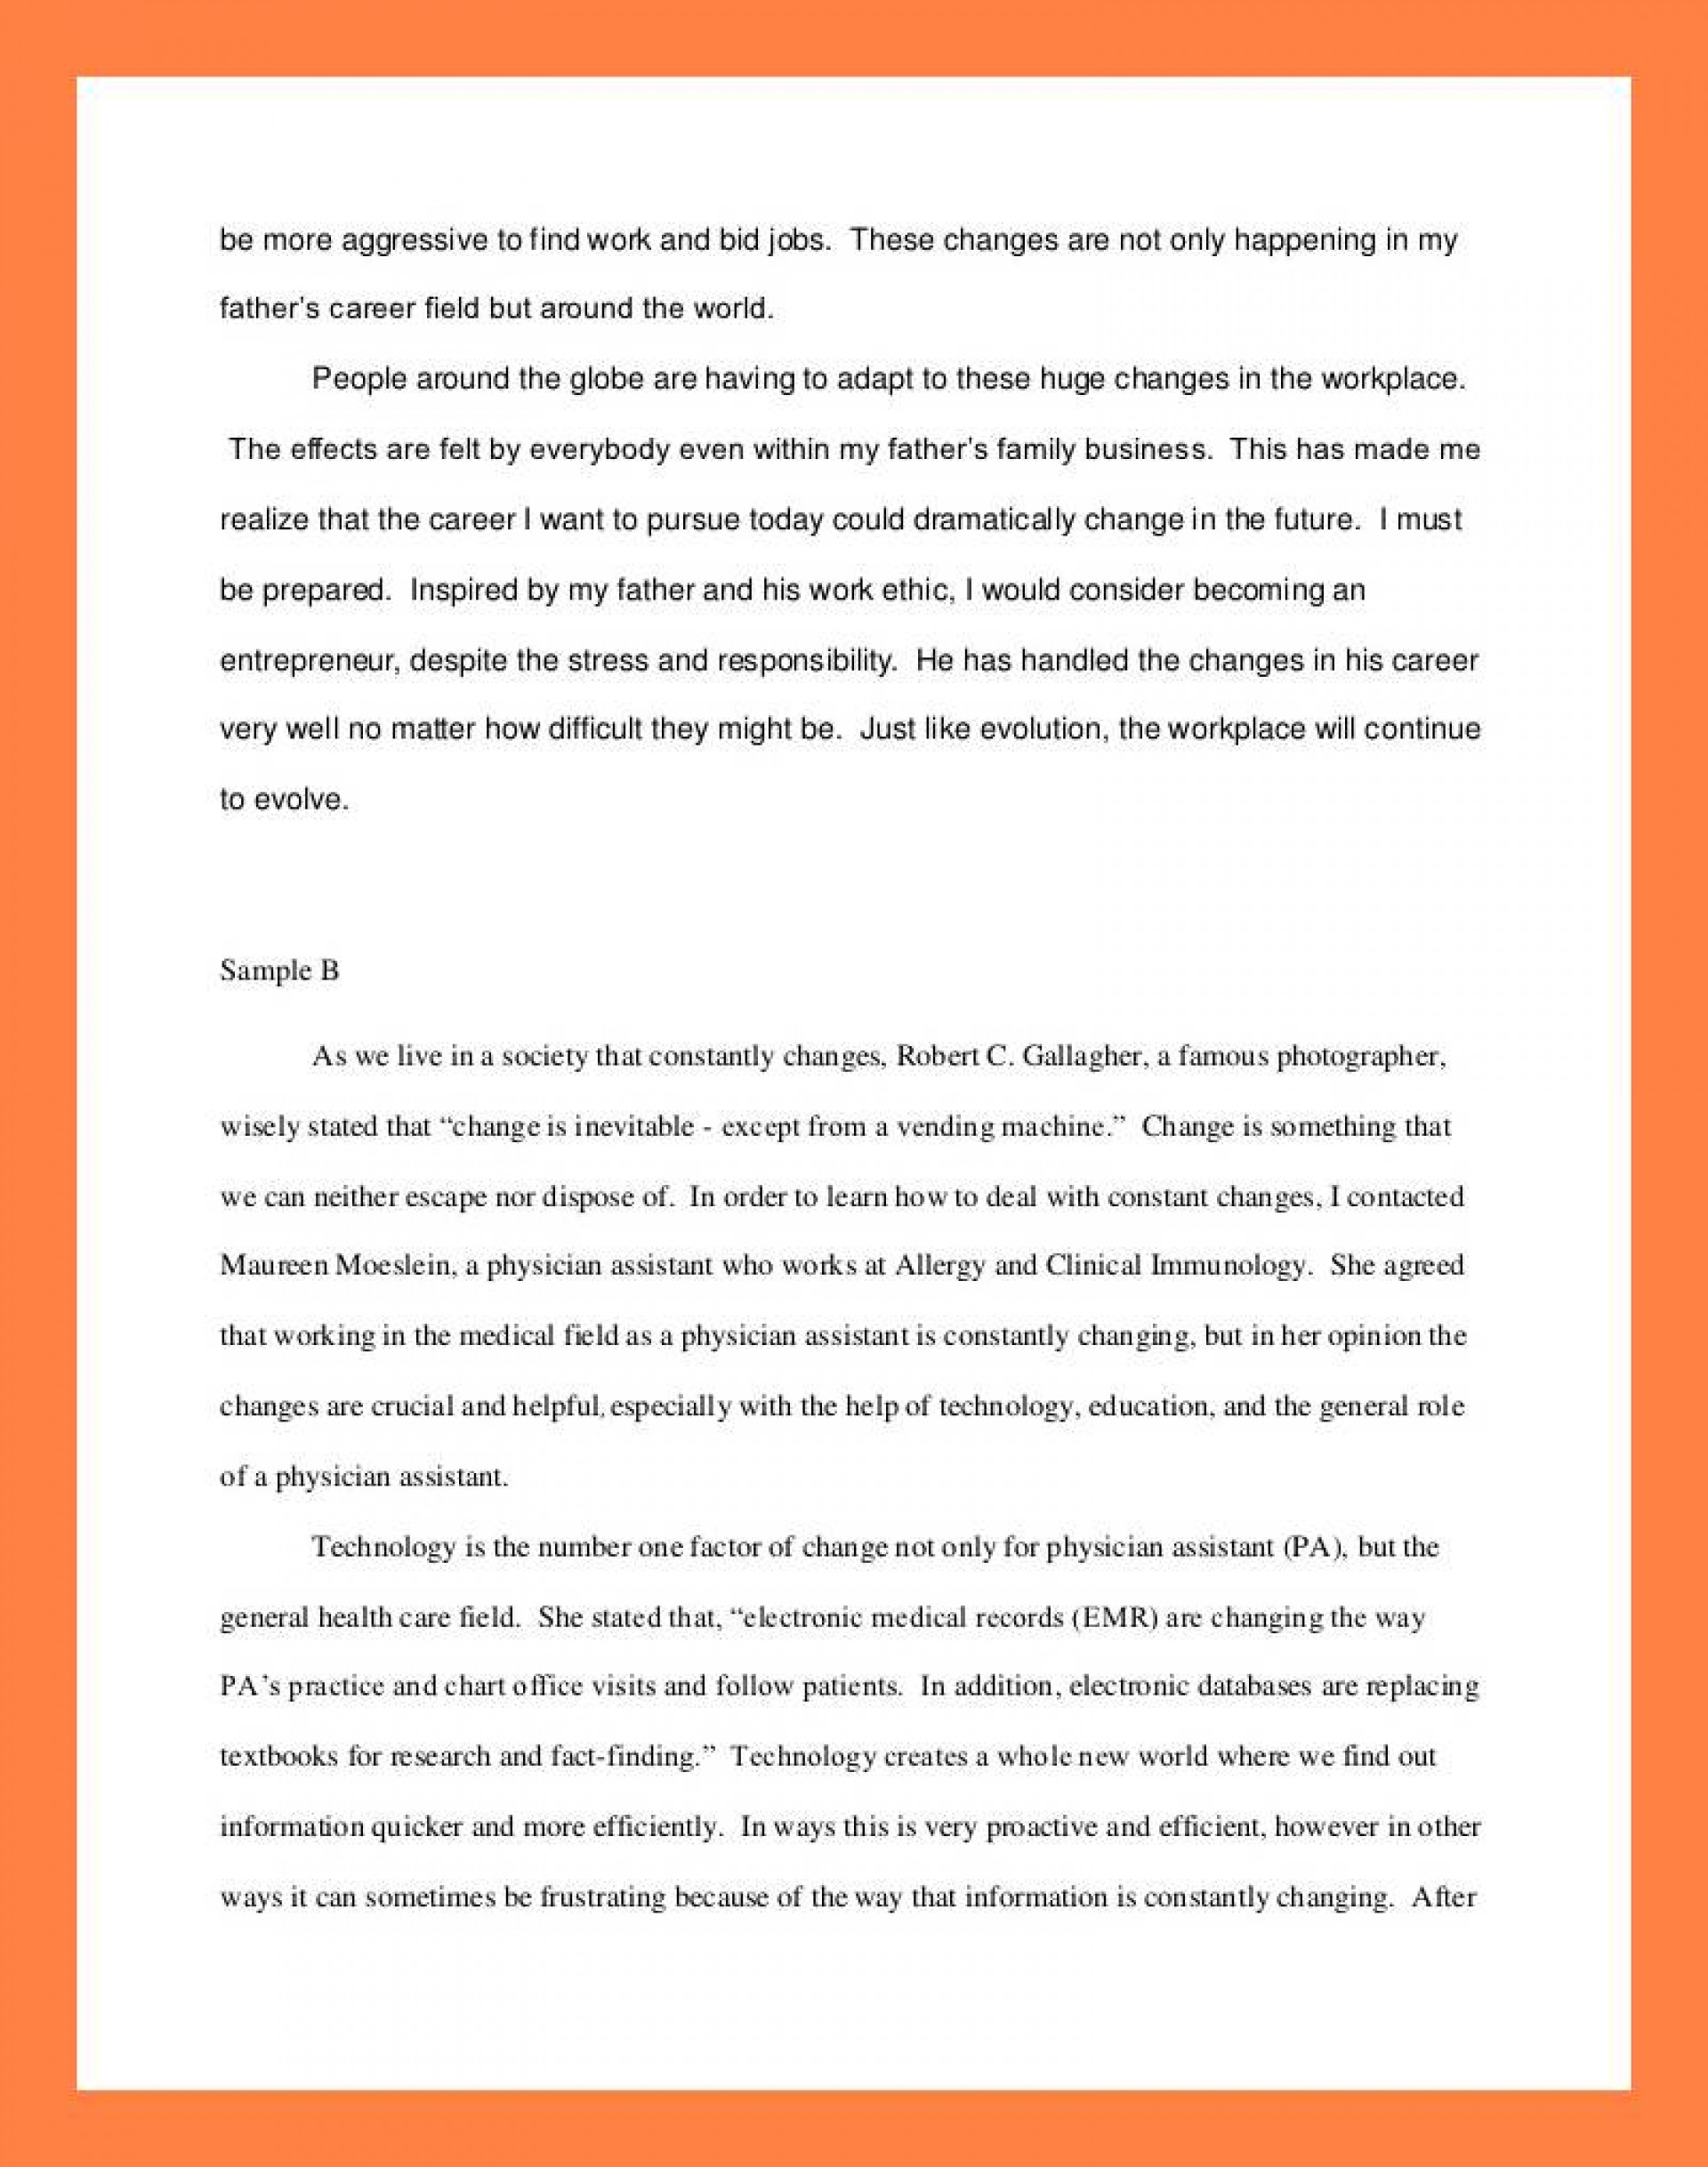 012 Interview Essays Of Student Reflections Free Beautiful Essay Examples Ielts Opinion Download Persuasive High School 1920